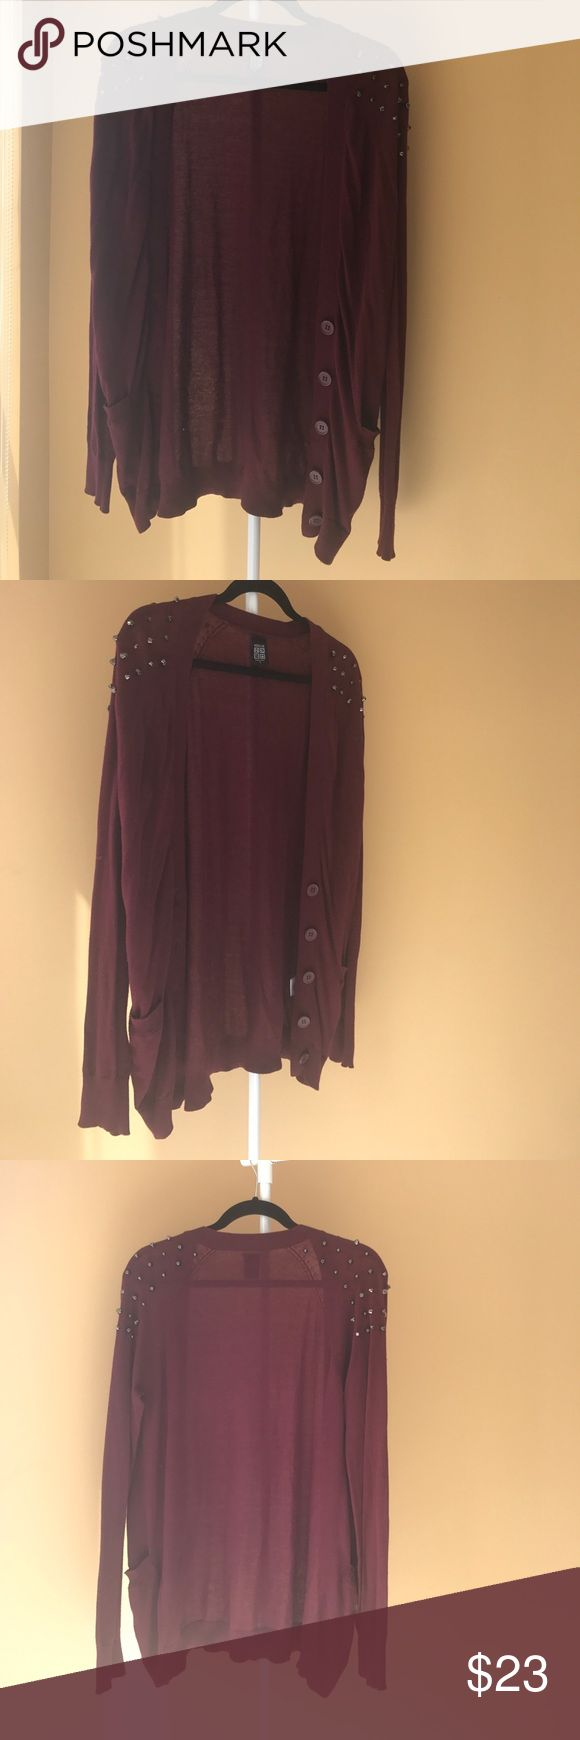 Maroon Cardigan with Edgy Shoulder Studs Adorable maroon Cardigan with gunmetal colored studs on the shoulders. Extremely soft & comfortable, perfect for the fall time. PacSun Sweaters Cardigans